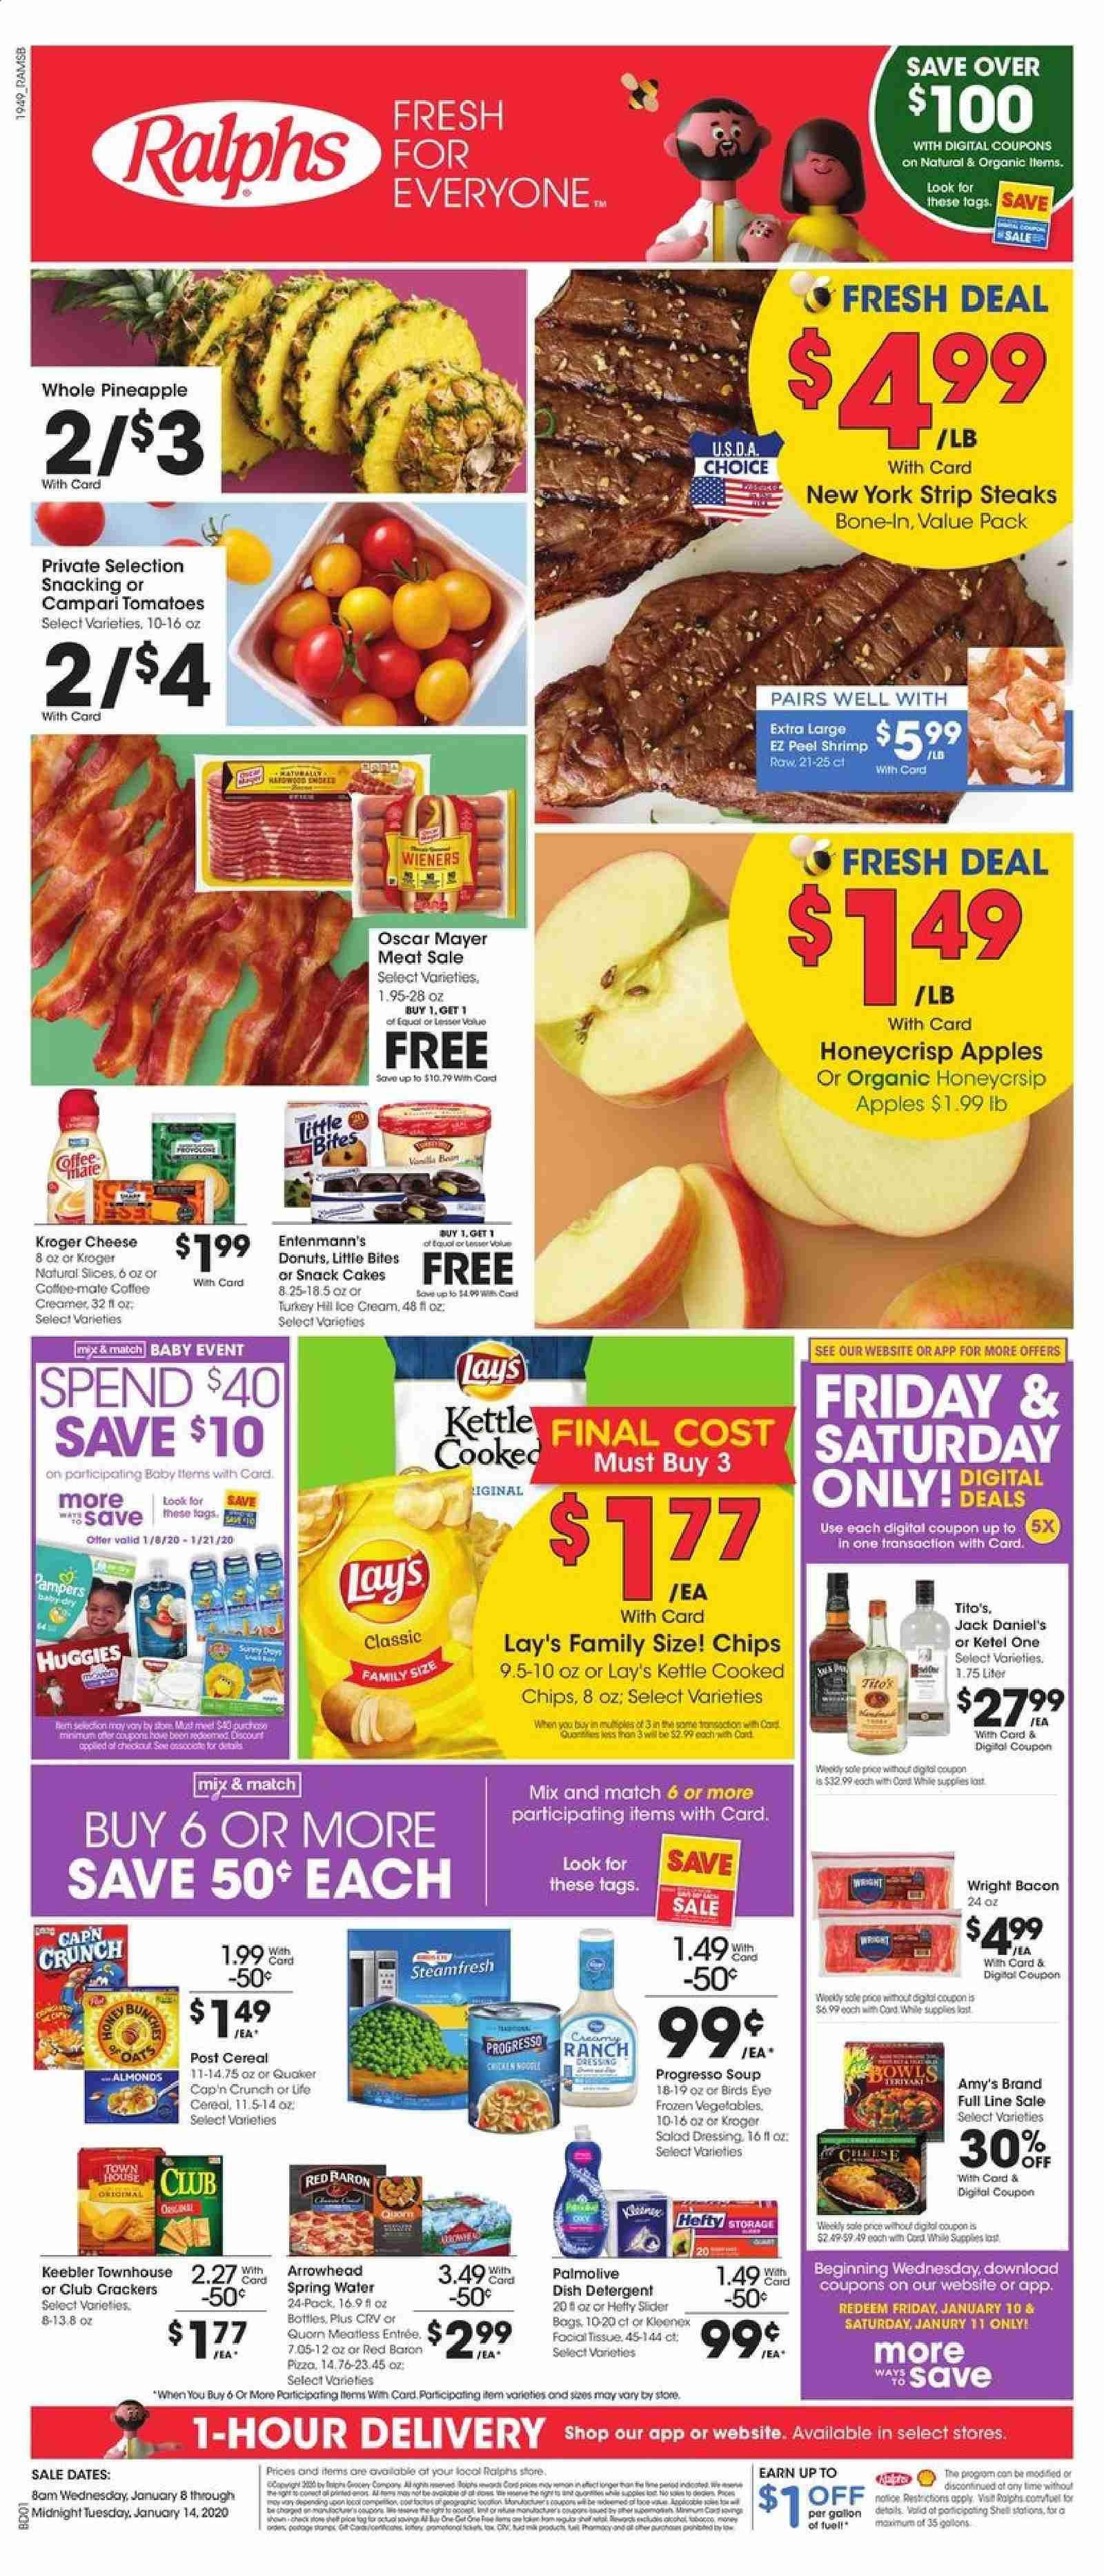 Ralphs Flyer  - 01.08.2020 - 01.14.2020. Page 1.